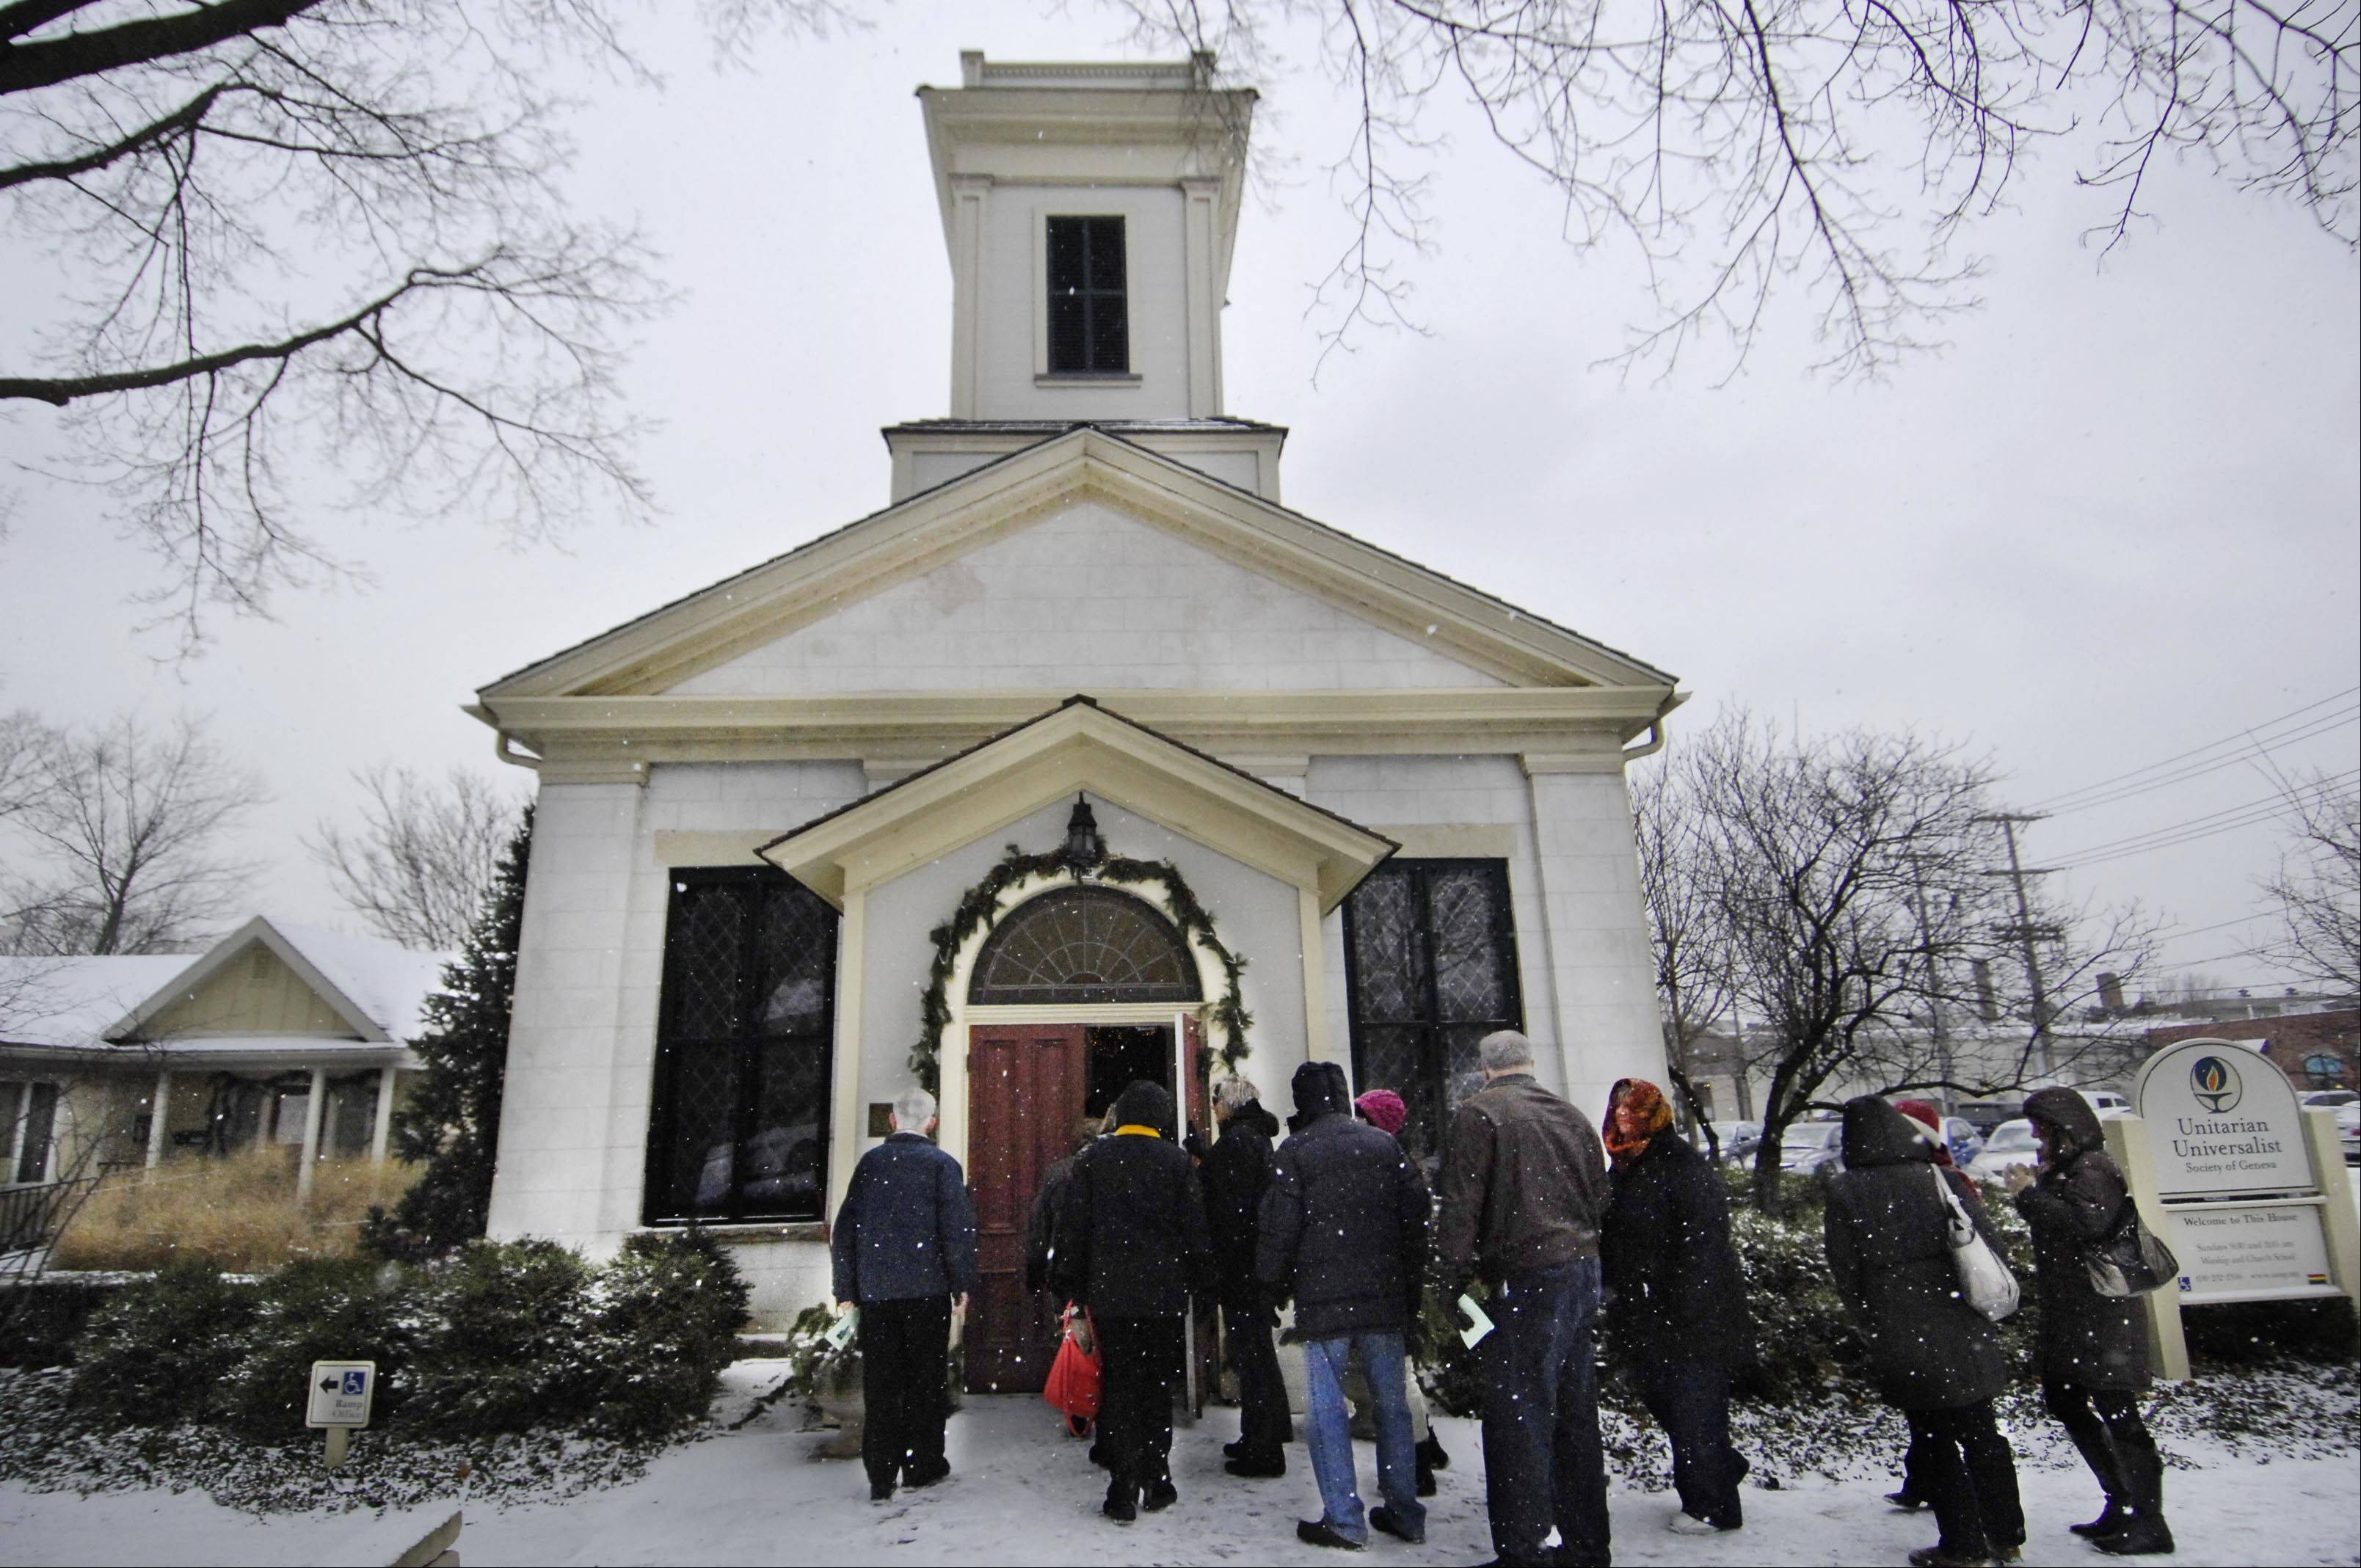 Visitors enter the oldest church in Geneva, the Unitarian Universalist Society, Sunday during the city's annual Steeple Walk. The Geneva Cultural Arts Commission sponsors the event, in which participants visit four city churches and enjoy musical performances at each.